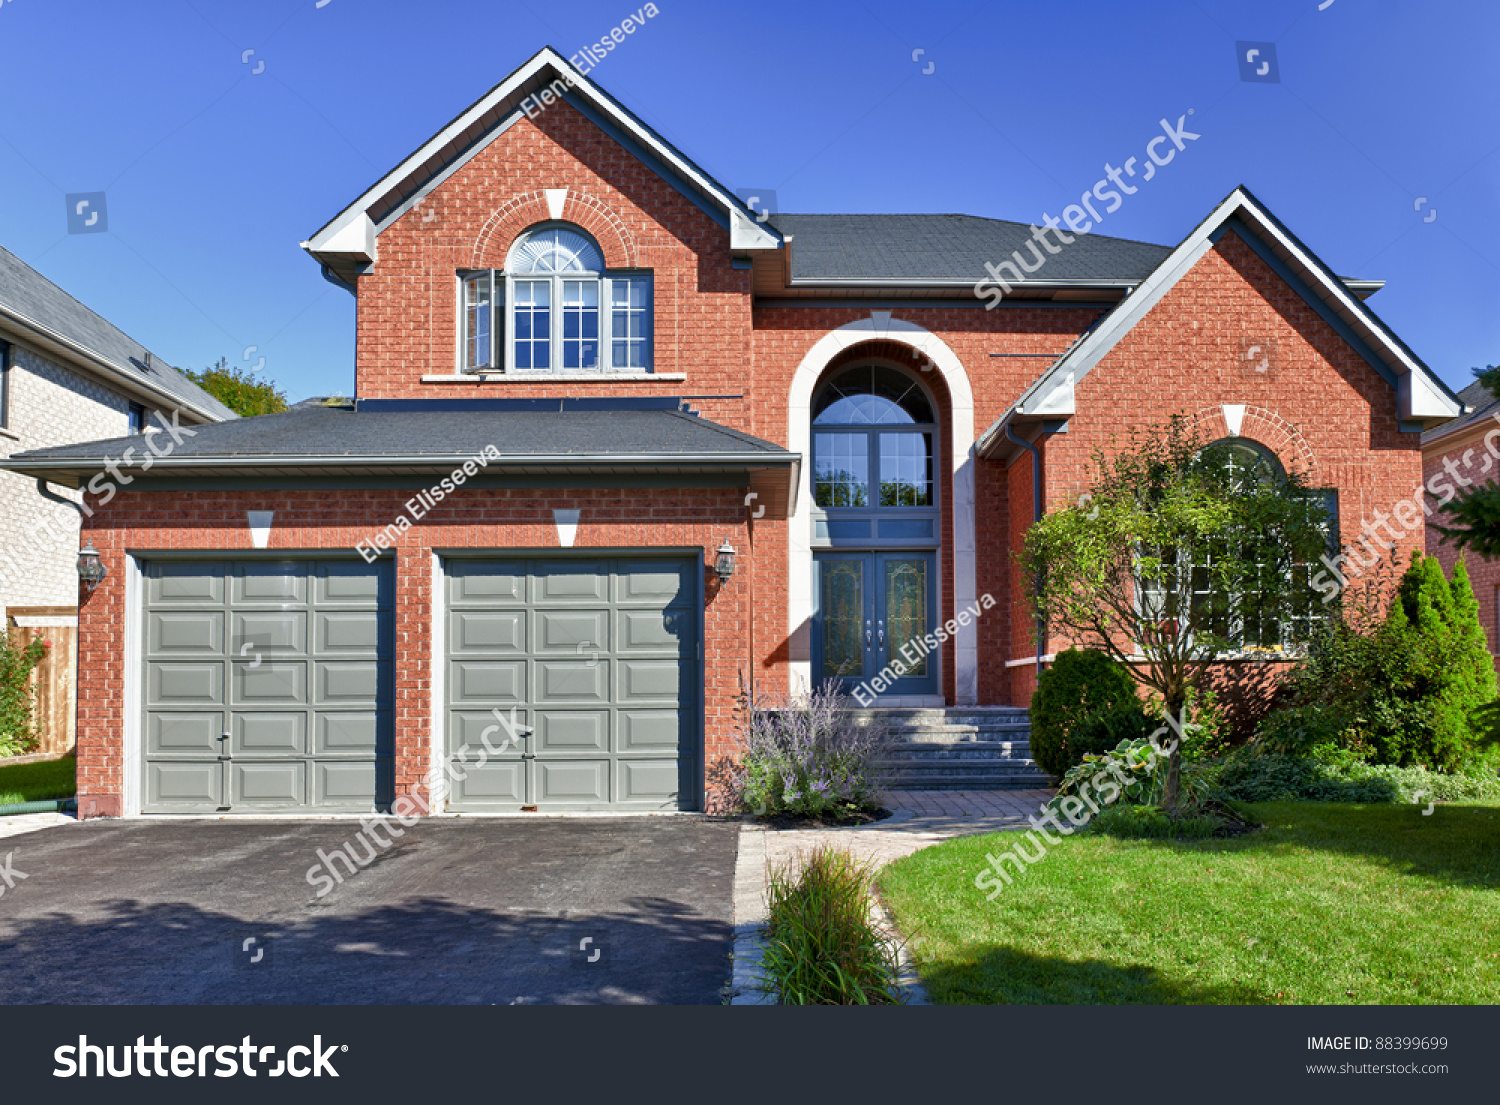 Brick house in suburbs with two car garage stock photo for Brick garages prices